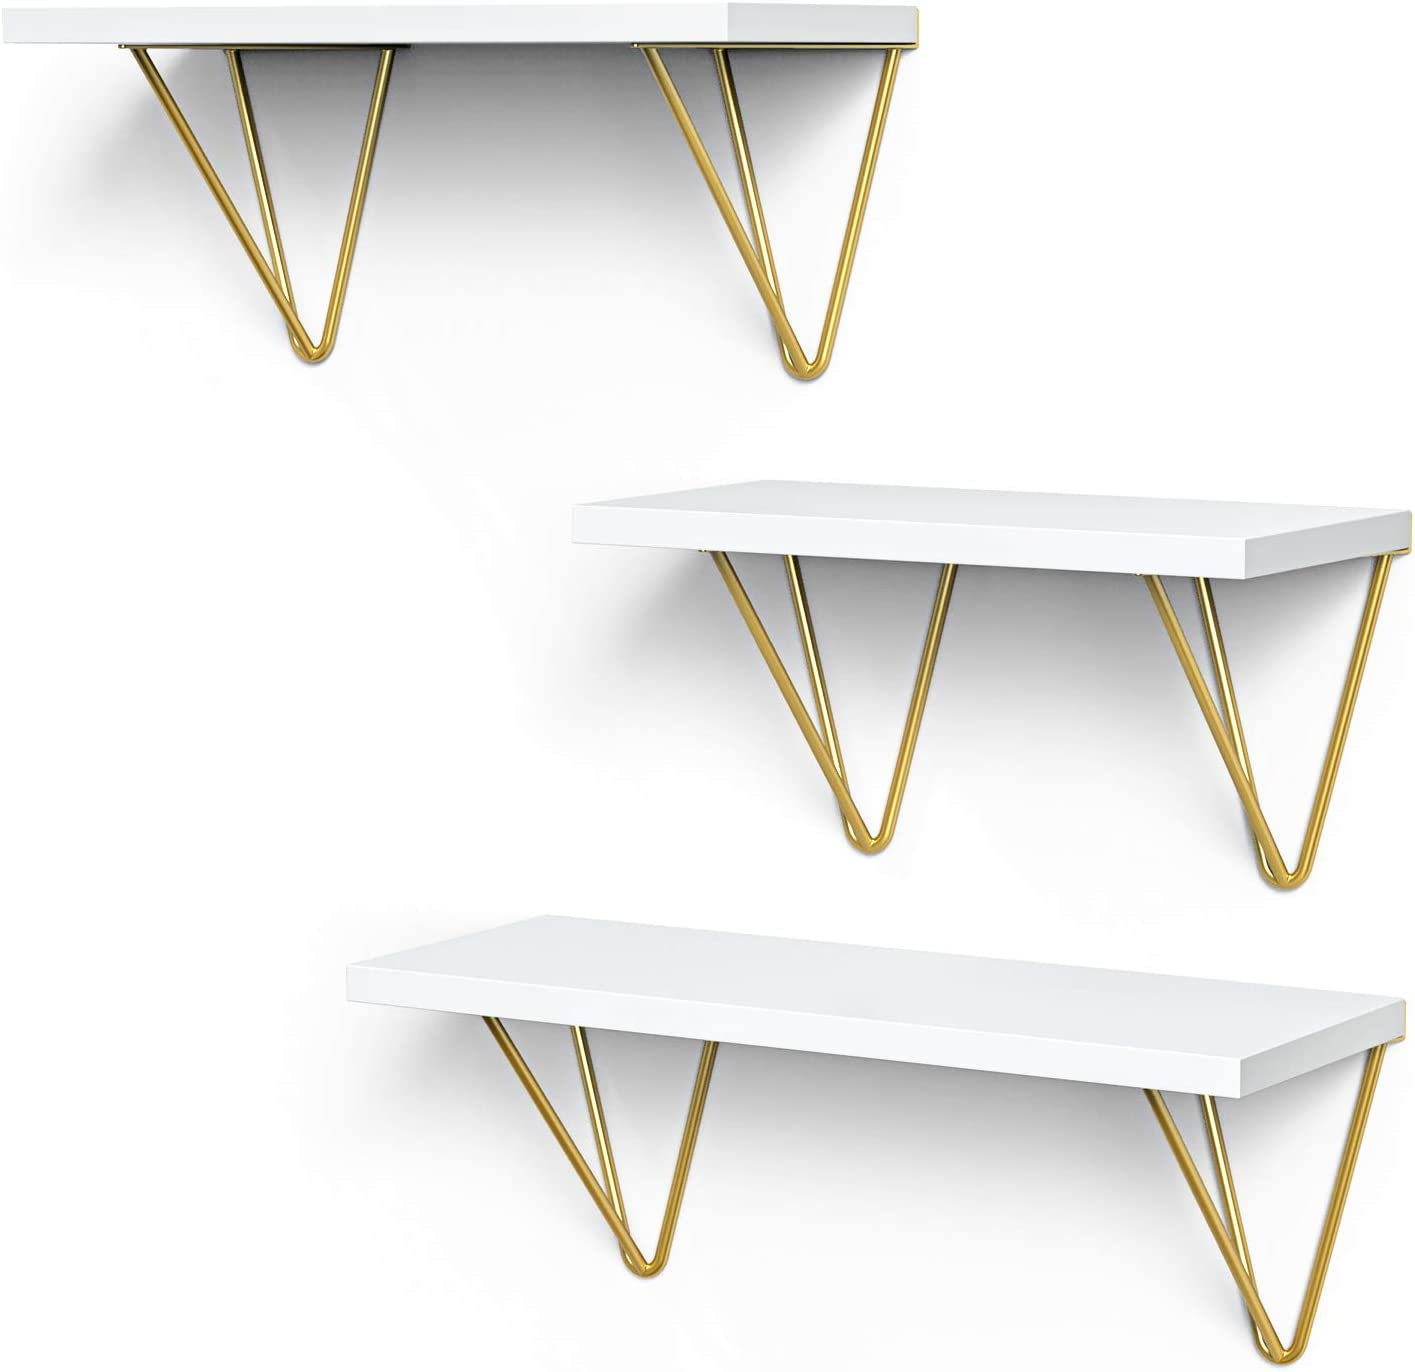 STORAGEGEAR Floating Shelves with Triangle Modern Gold Bracket Set of 3 Wall Mounted Shelves for Home Decor Living Room , Bathroom, Bedroom, Kitchen